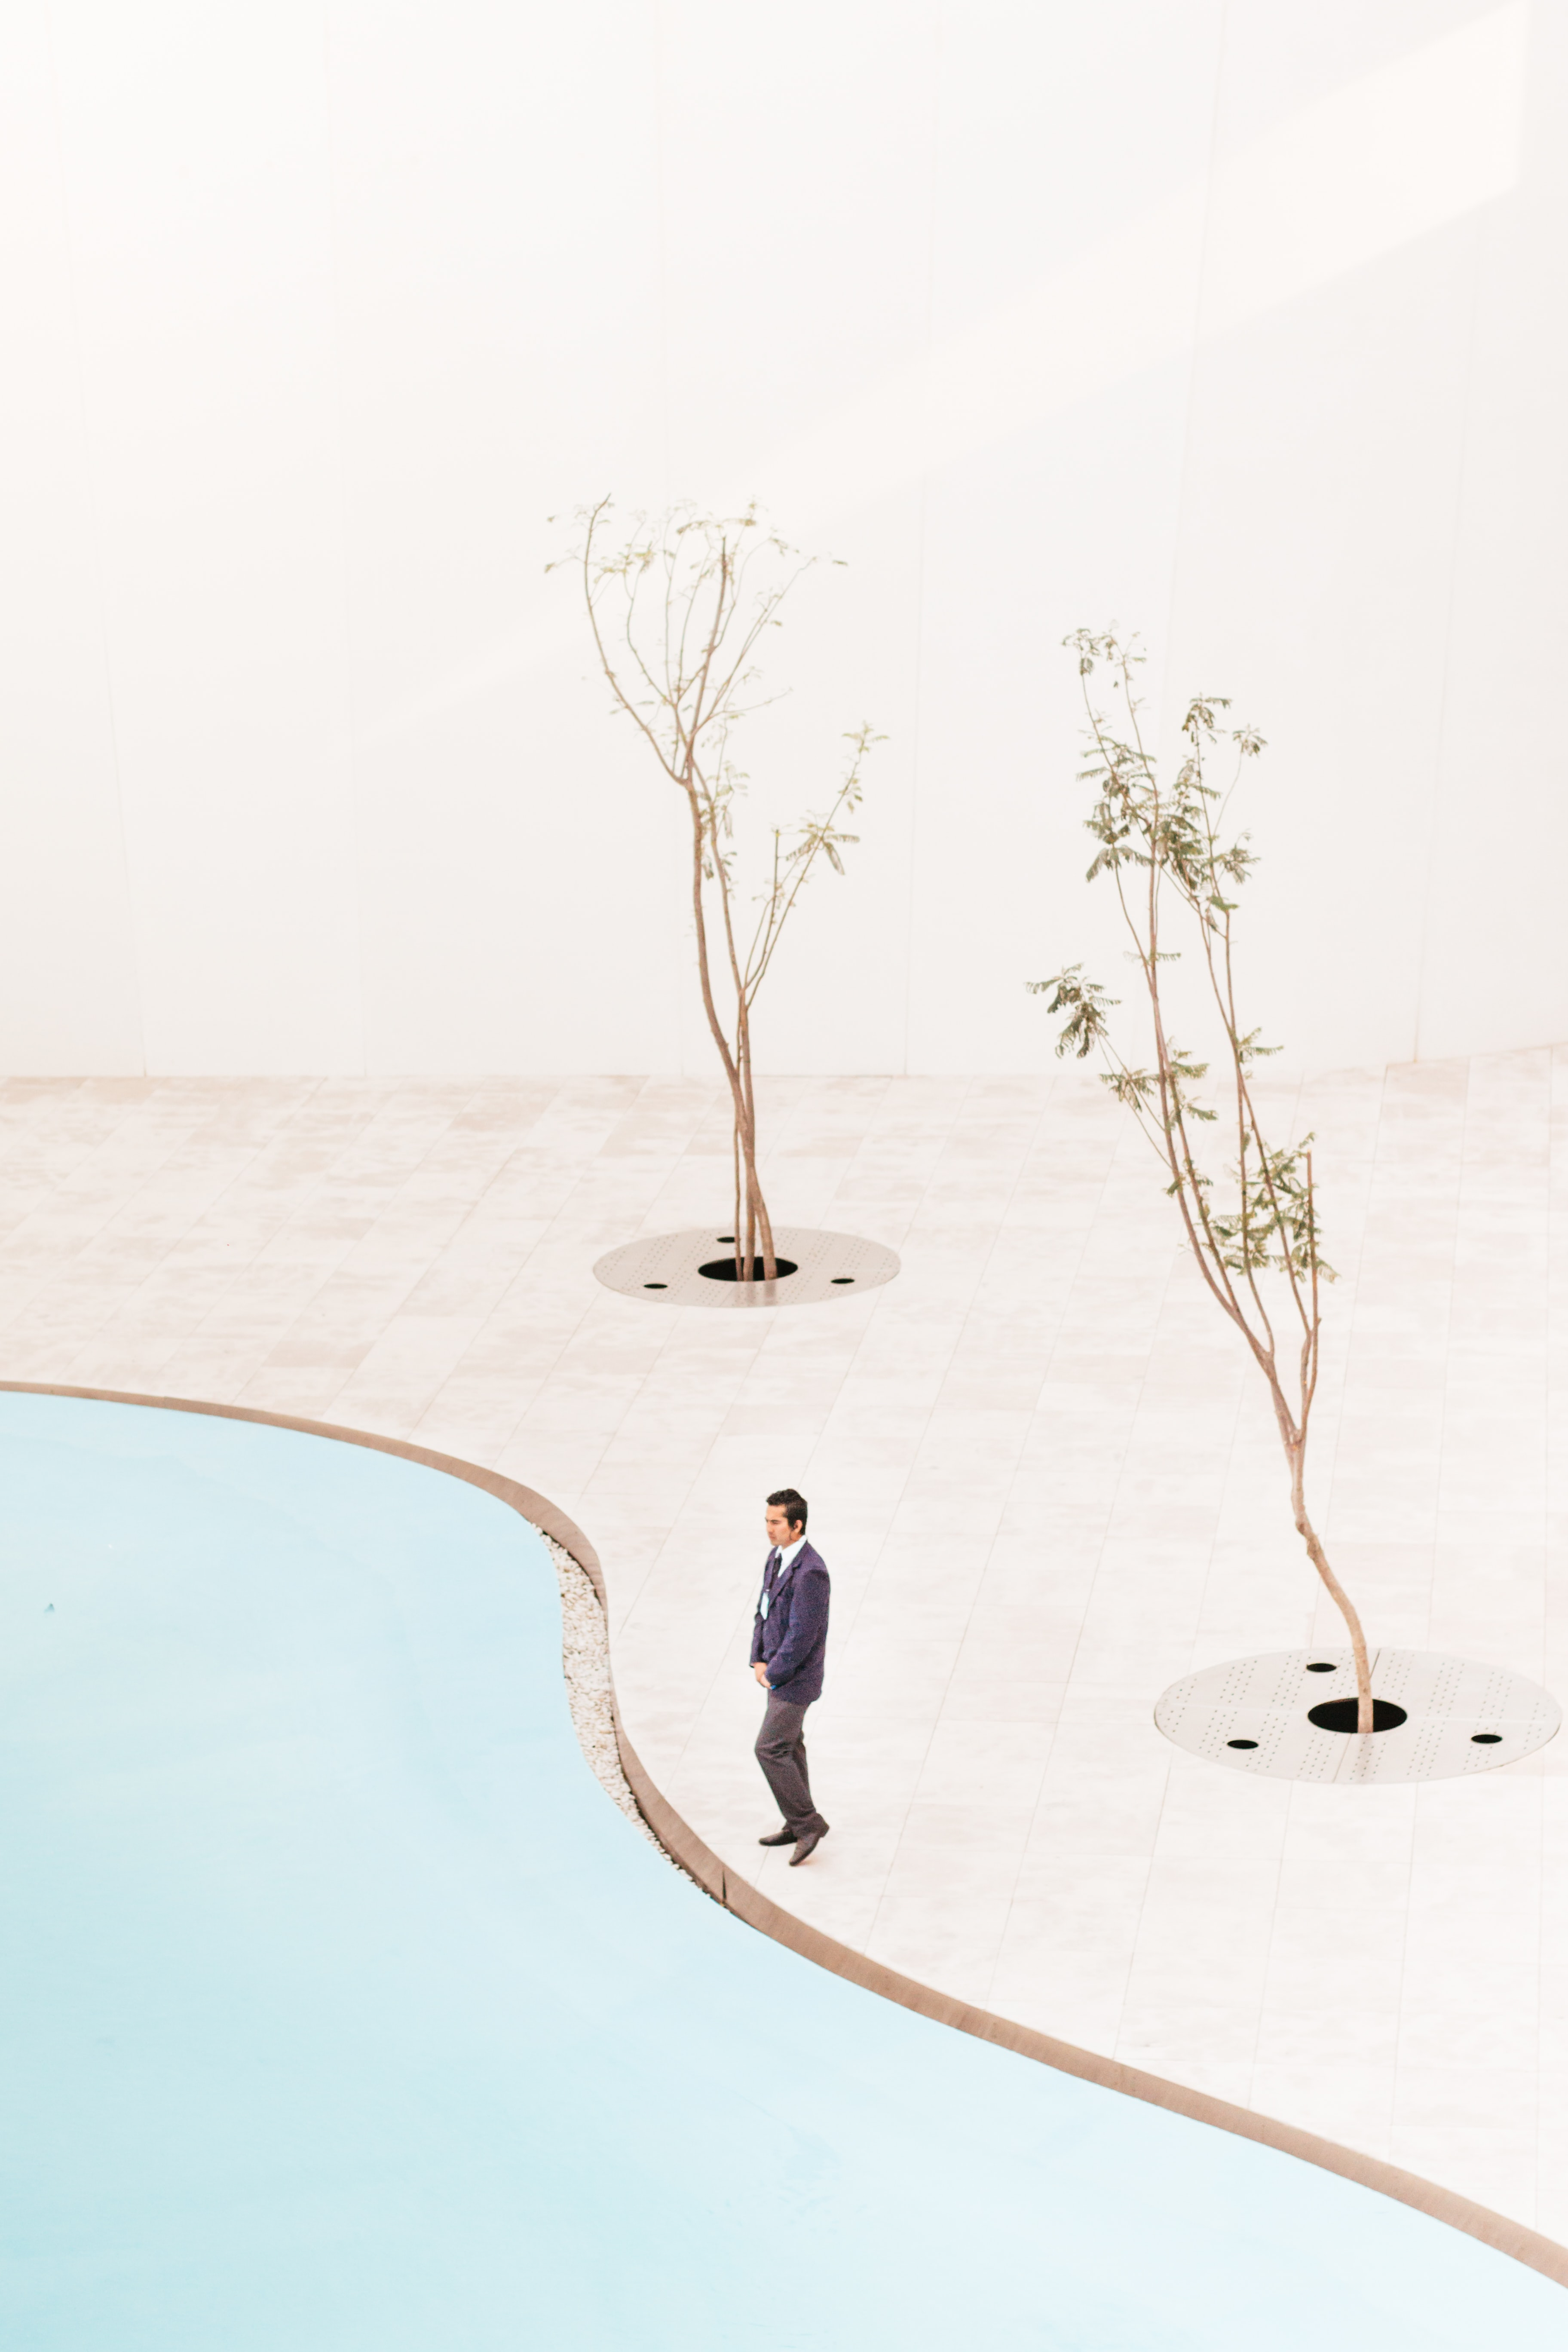 A man in a suit standing at the edge of a pool